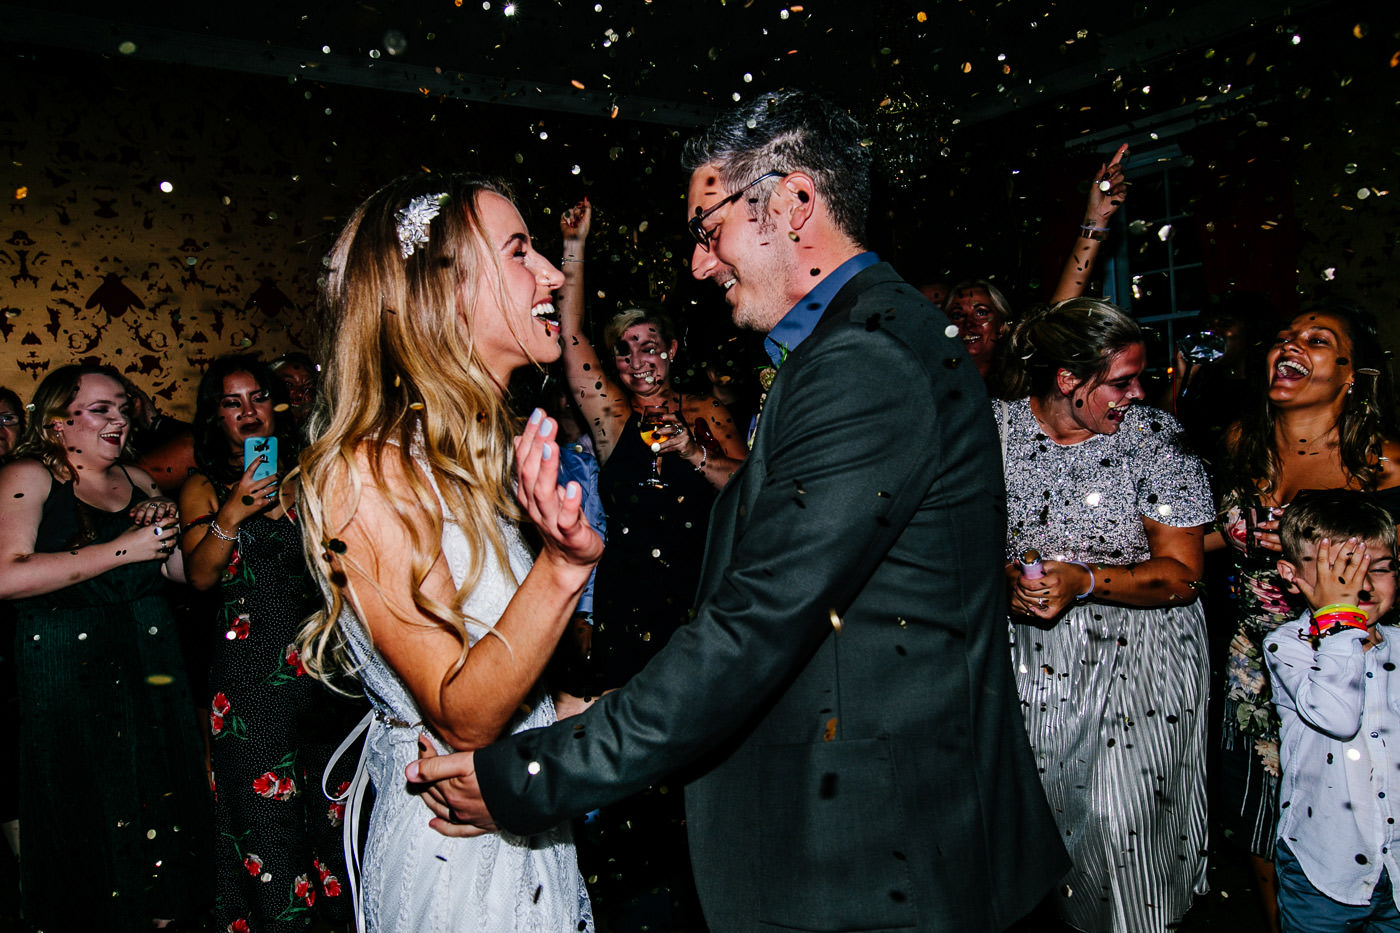 The-bell-in-Ticehurst-pub-kent-wedding-photographer-London-Epic-Love-Story-105